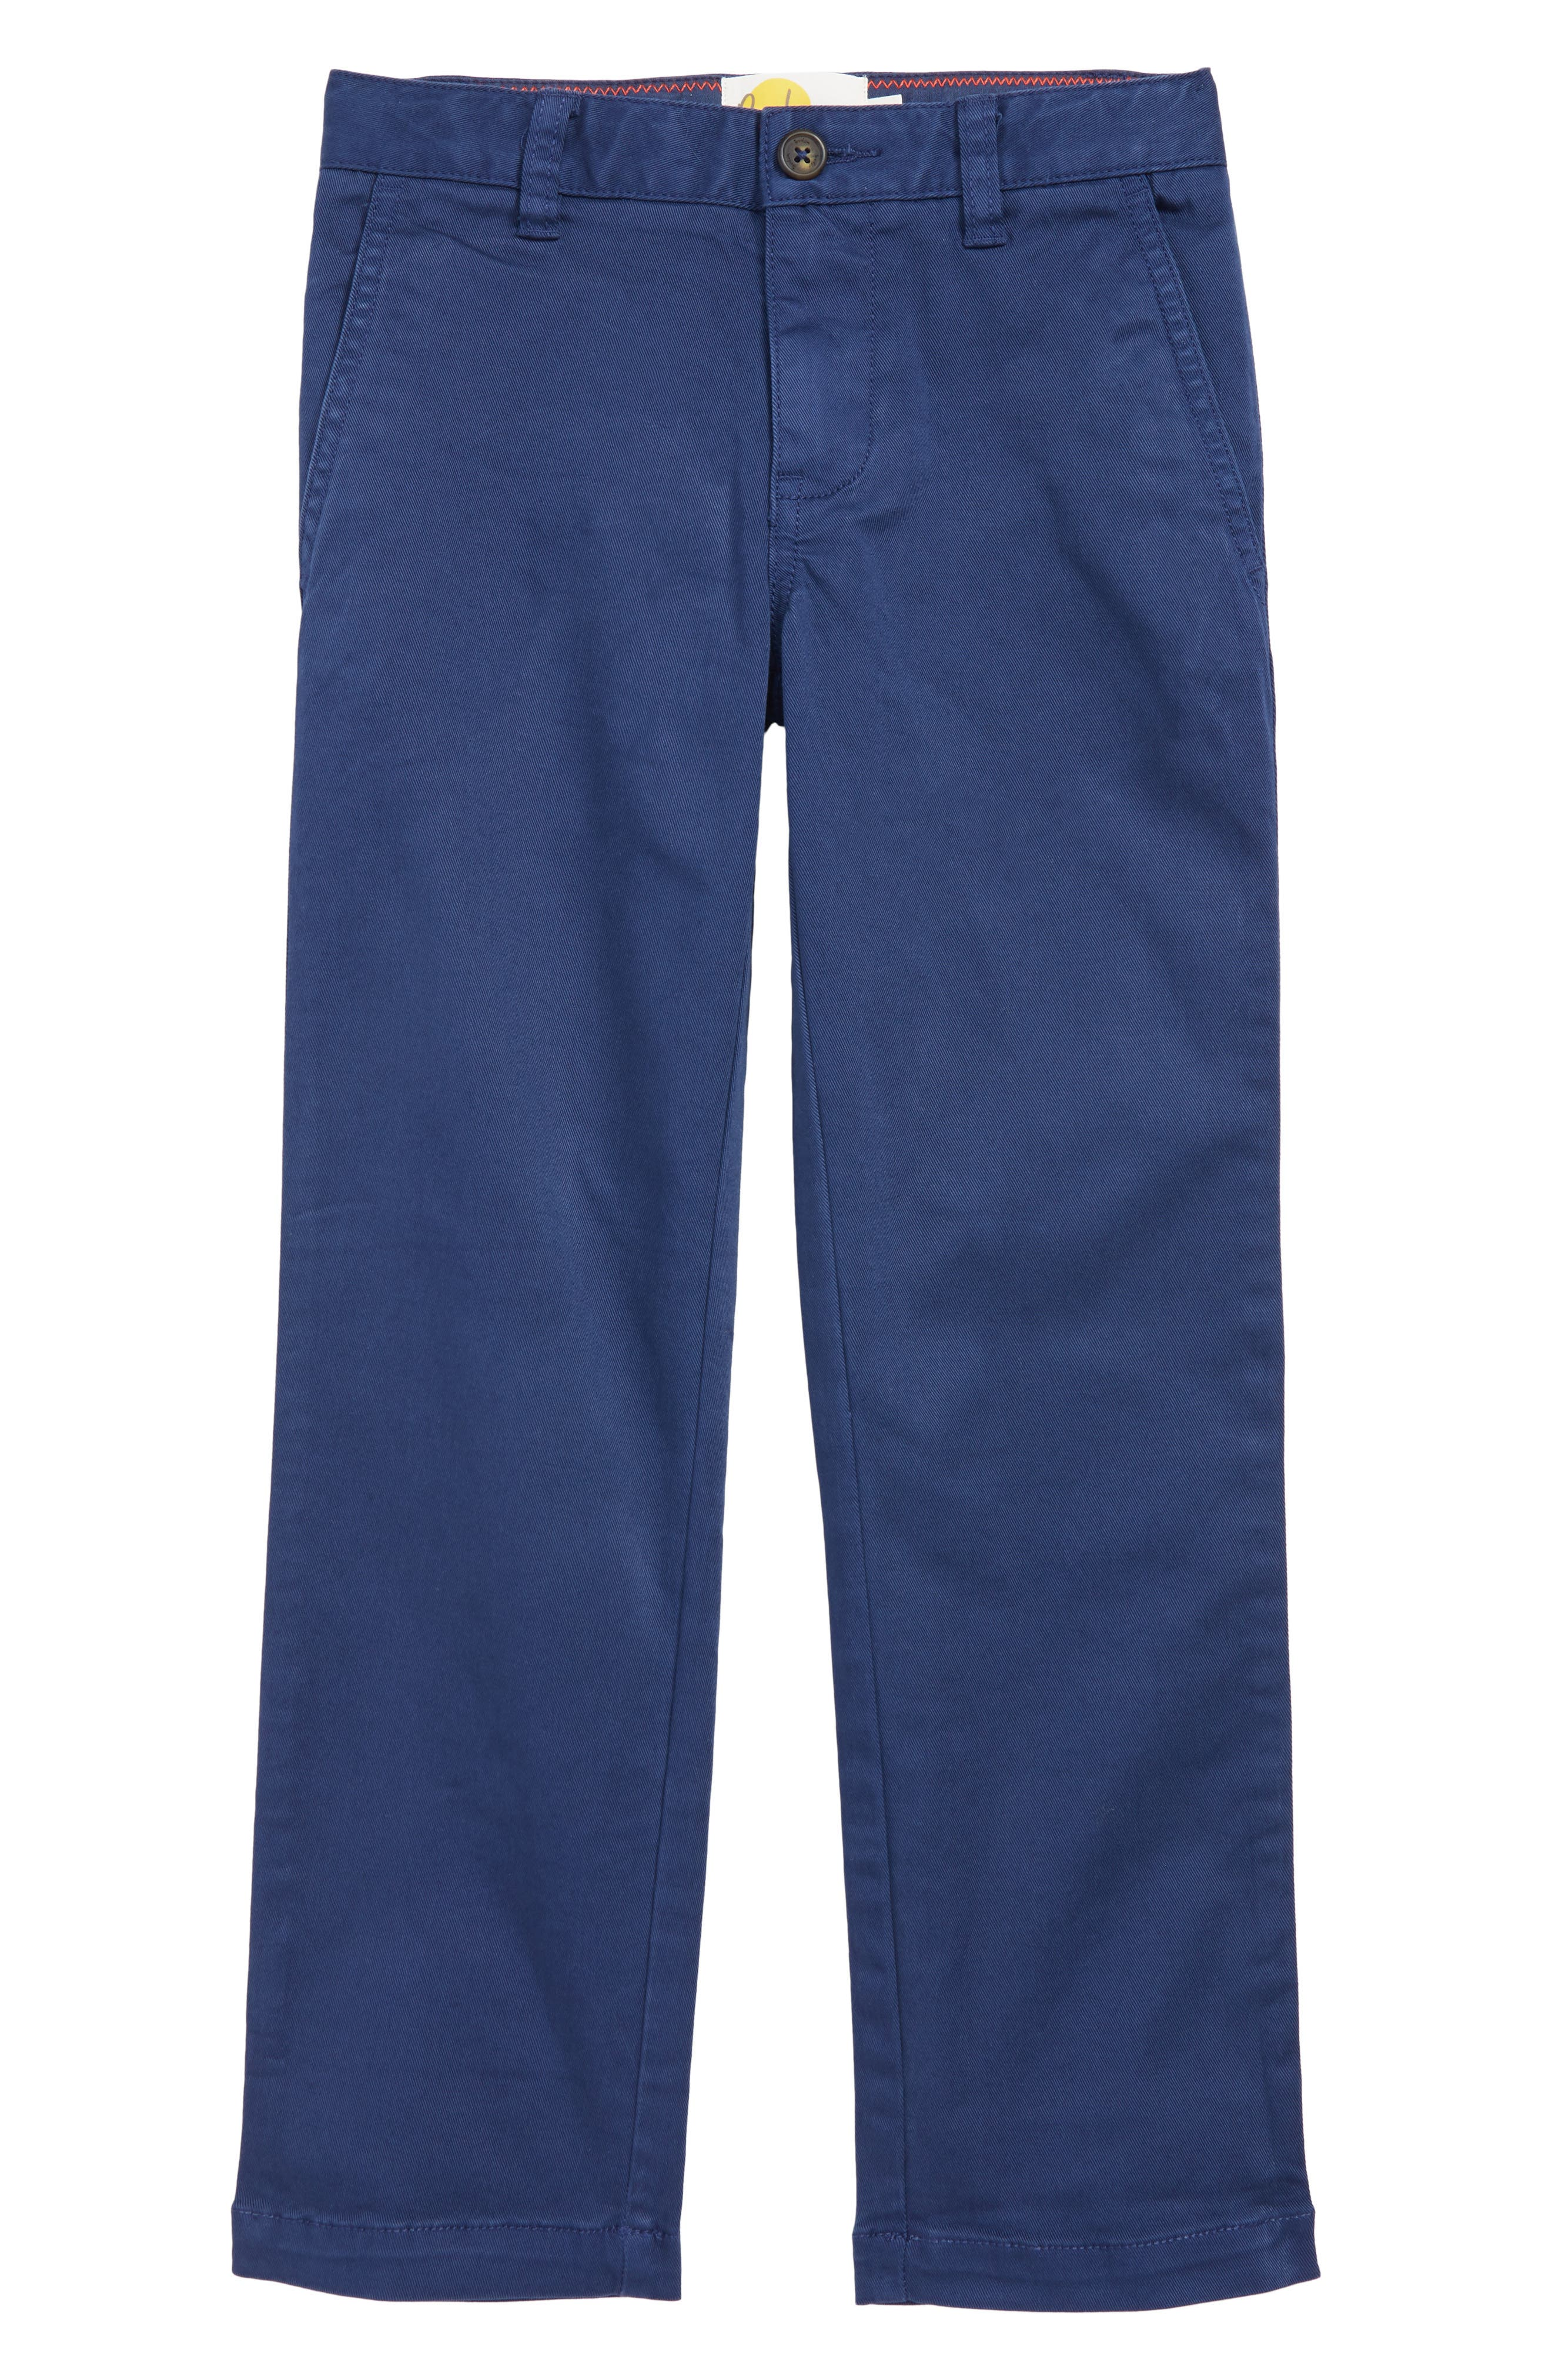 Toddler Boys Mini Boden Chino Pants Size 3Y  Blue